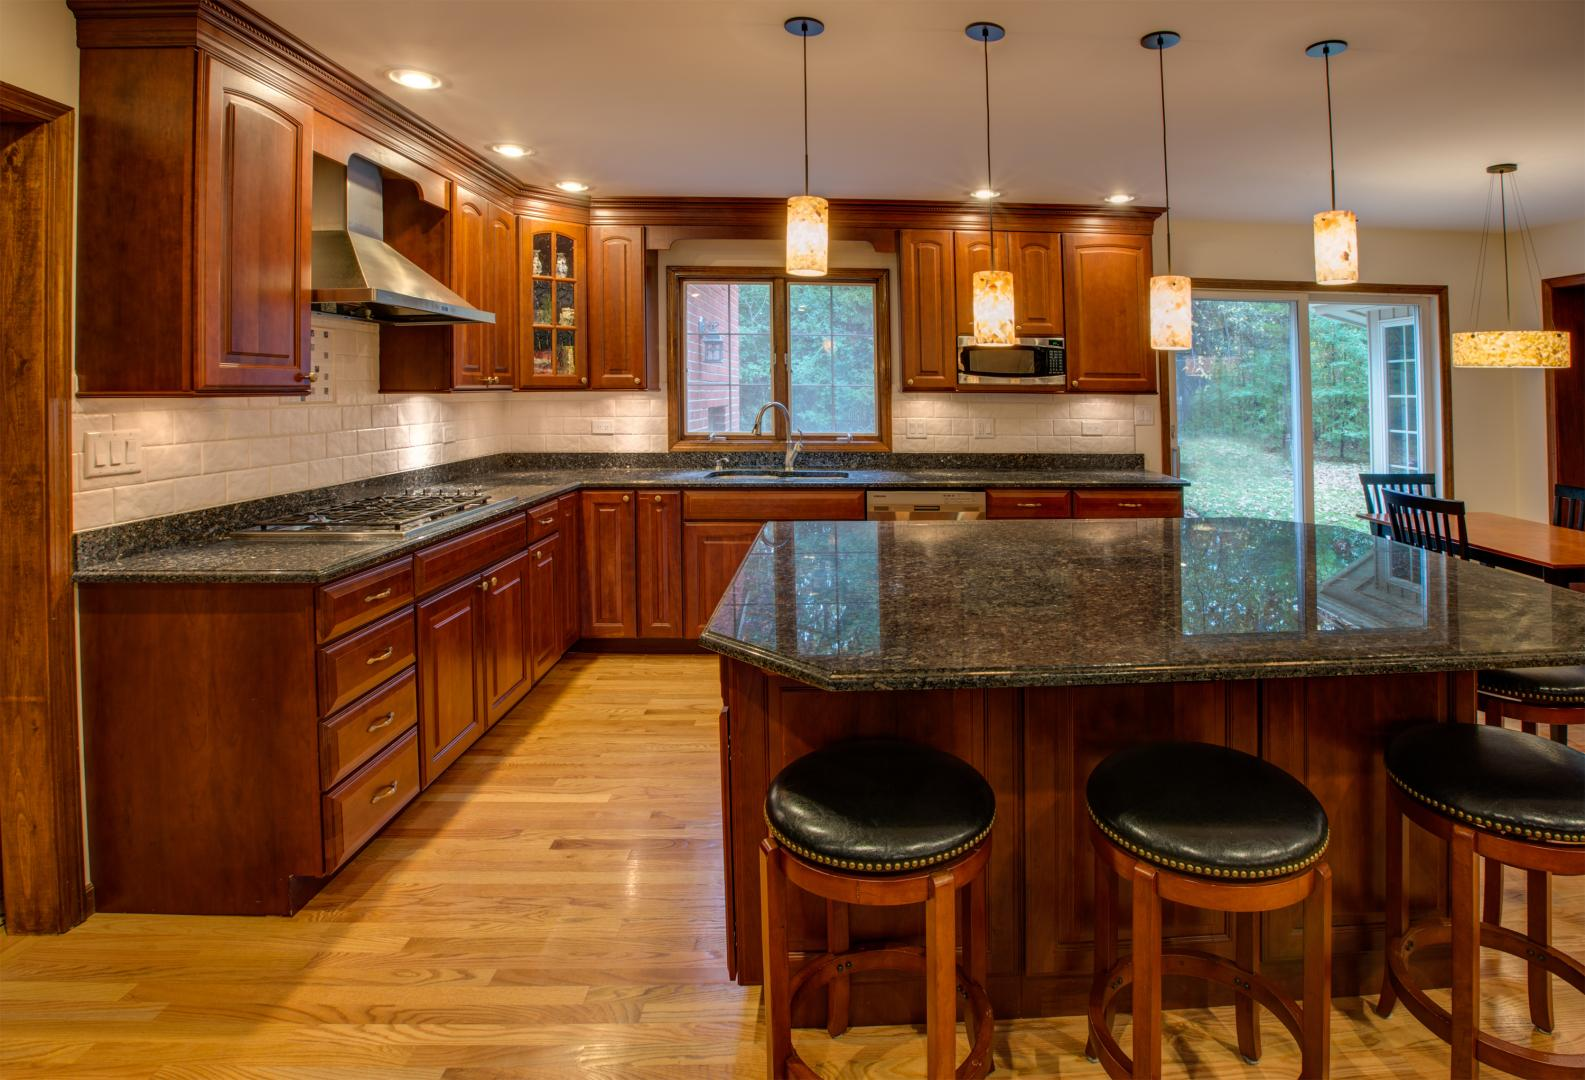 kitchen design concepts kitchen design concepts Kitchen Design Conception Riverhead